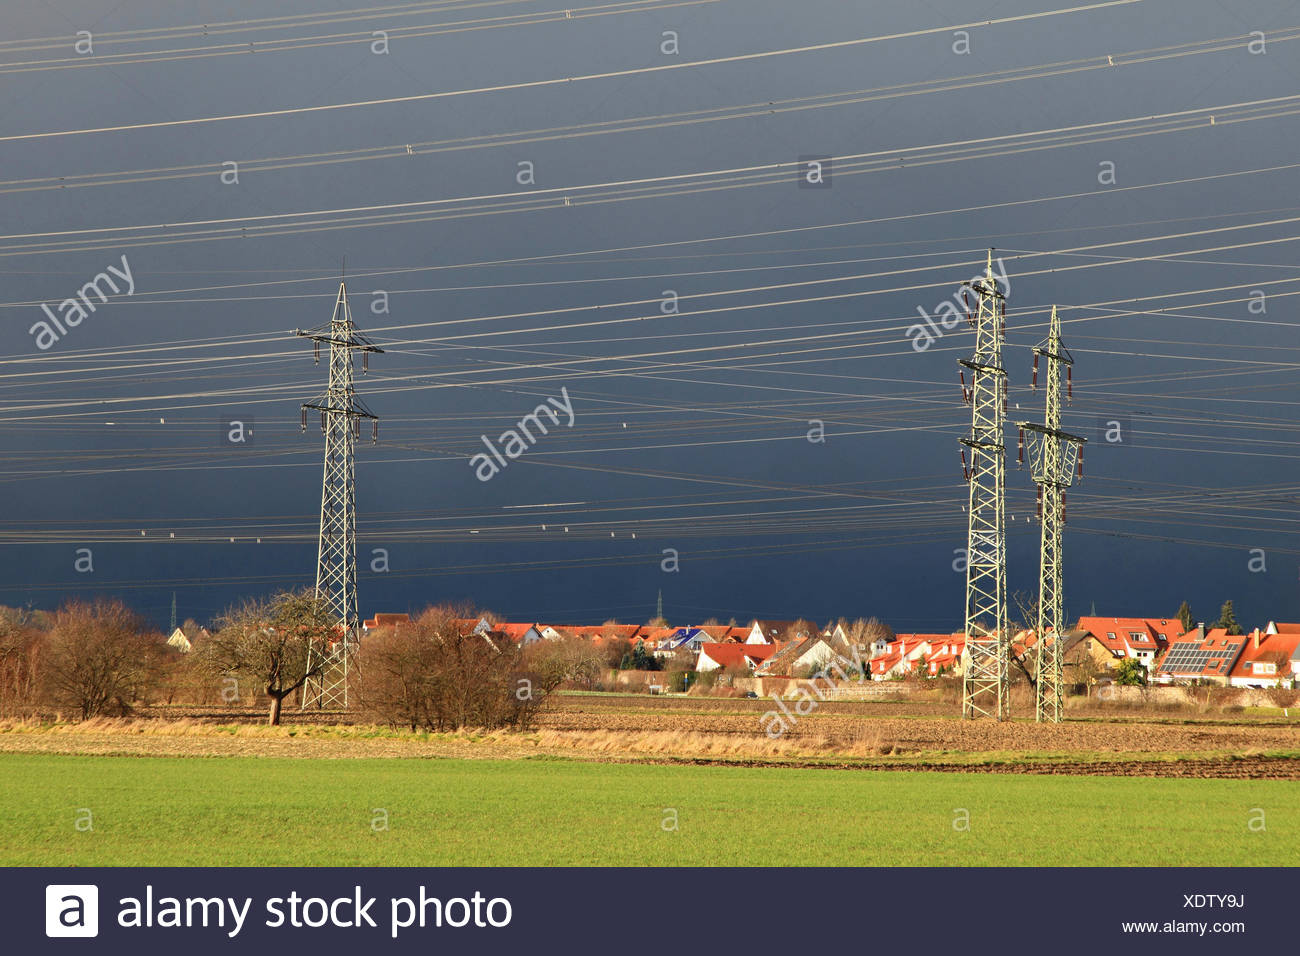 power poles in before thunder clouds, Germany, Baden-Wuerttemberg, Seckenheim - Stock Image